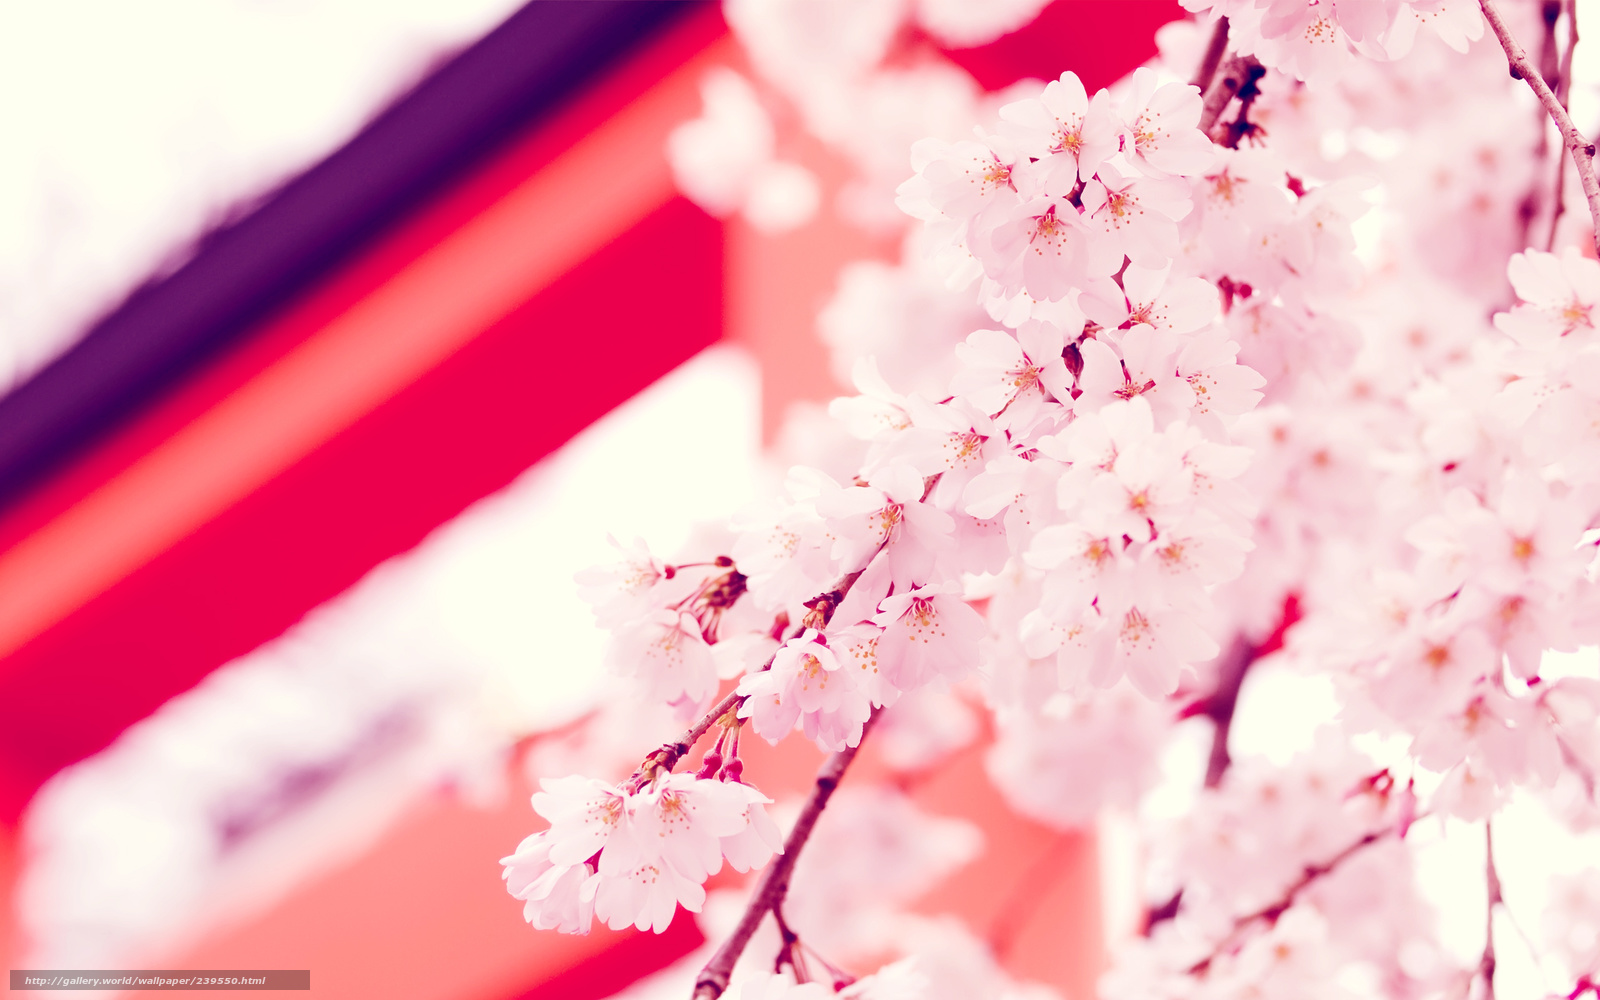 Floral wallpaper  Flower amp Cherry Blossom wallpapers